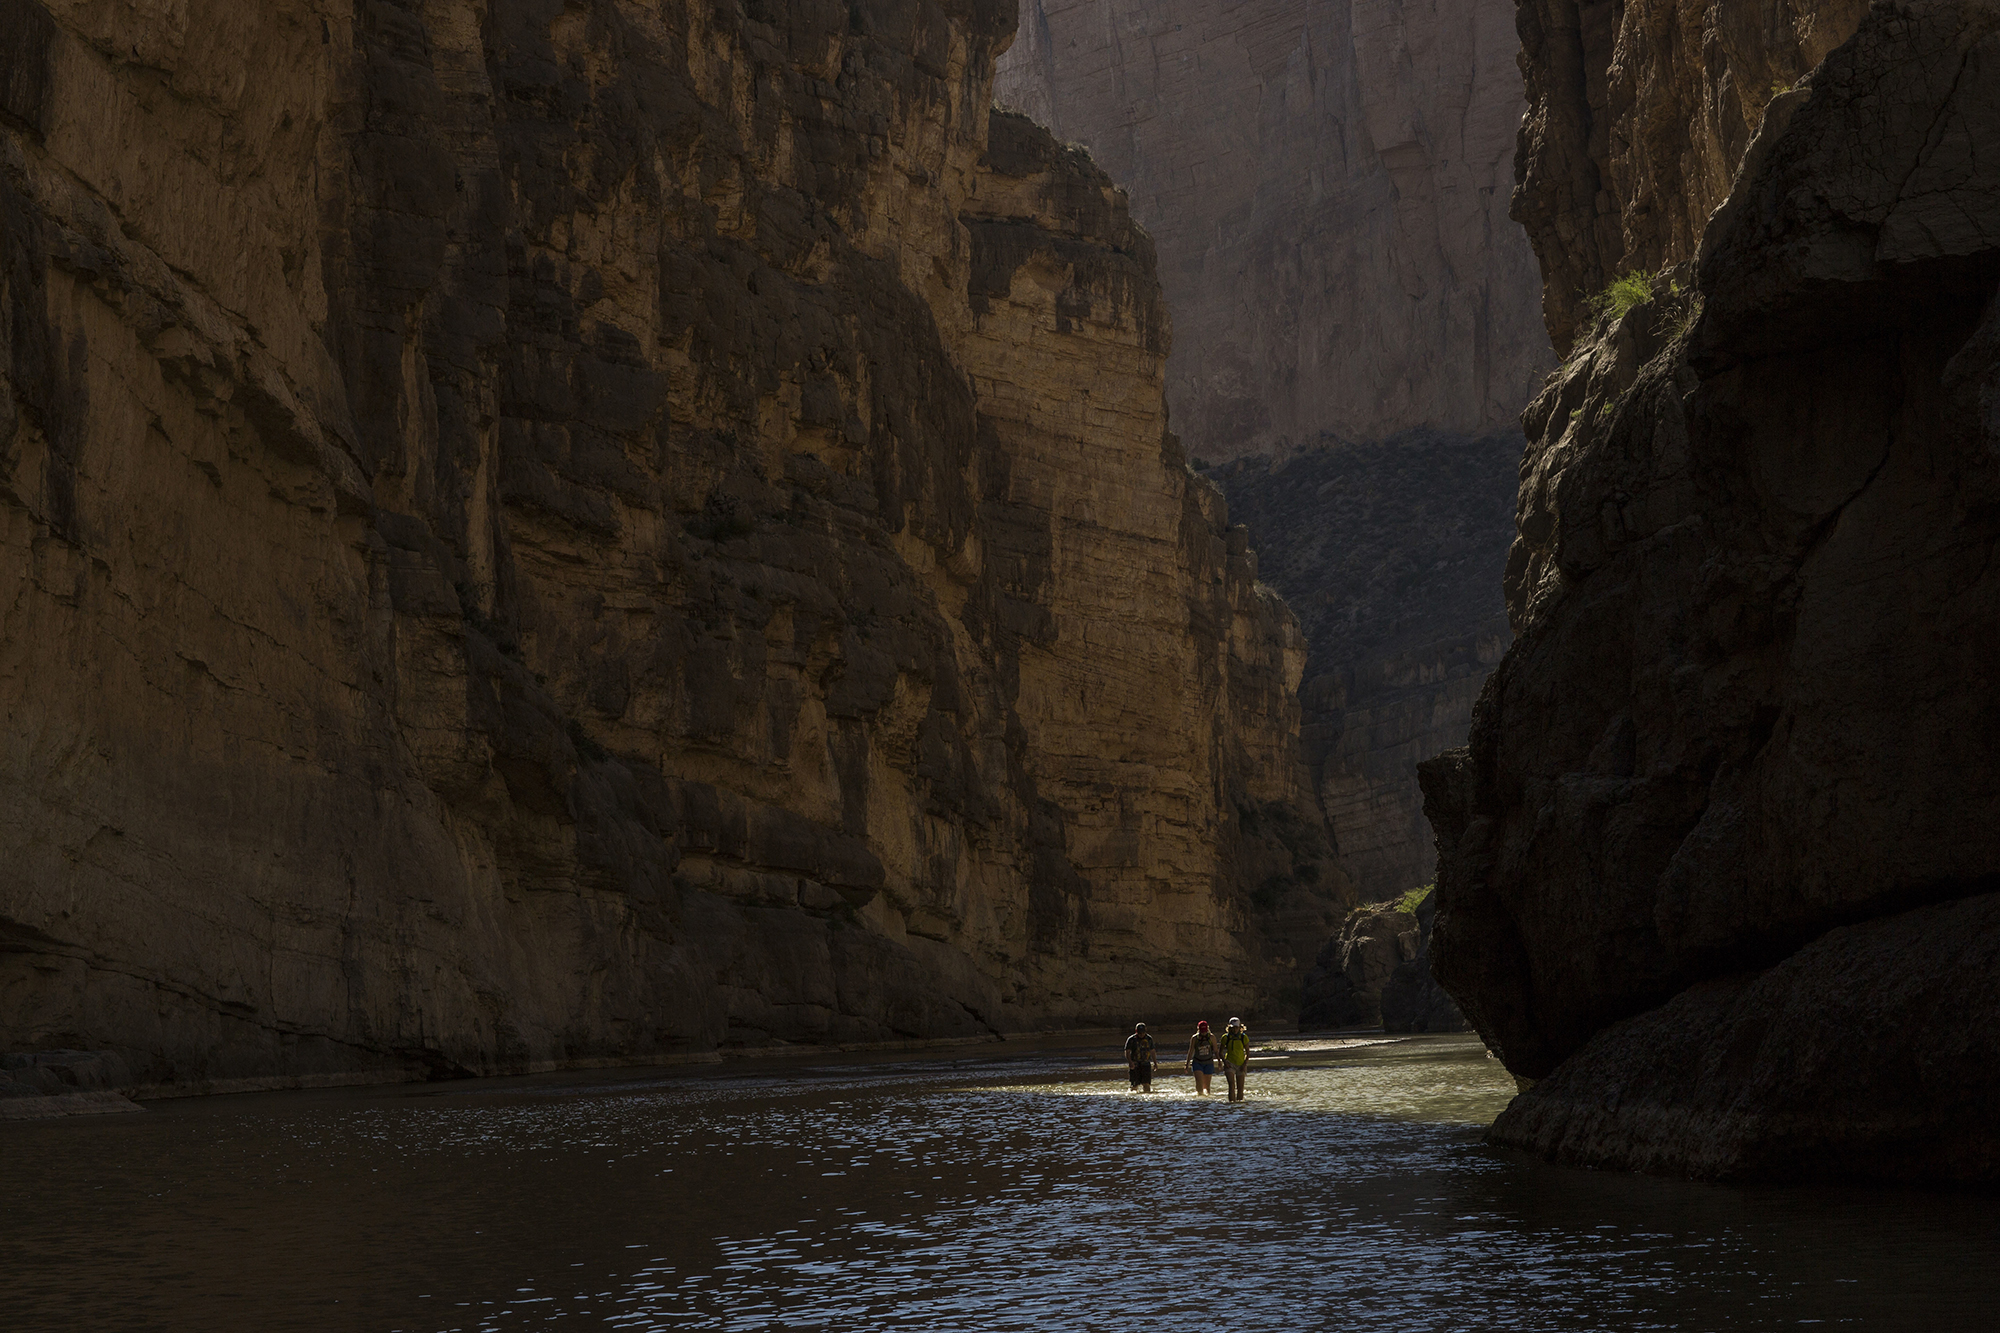 Tourists walk through Santa Elena Canyon, wading through the water of the Rio Grande, between Mexico, left, and the US, right, as they vacation at Big Bend National Park in Texas, Monday, March 27, 2017. Here the Rio Grande slides between two sheer cliff faces, one in Mexico and one in the United States, that tower 1,500 feet above the water. (AP Photo/Rodrigo Abd)